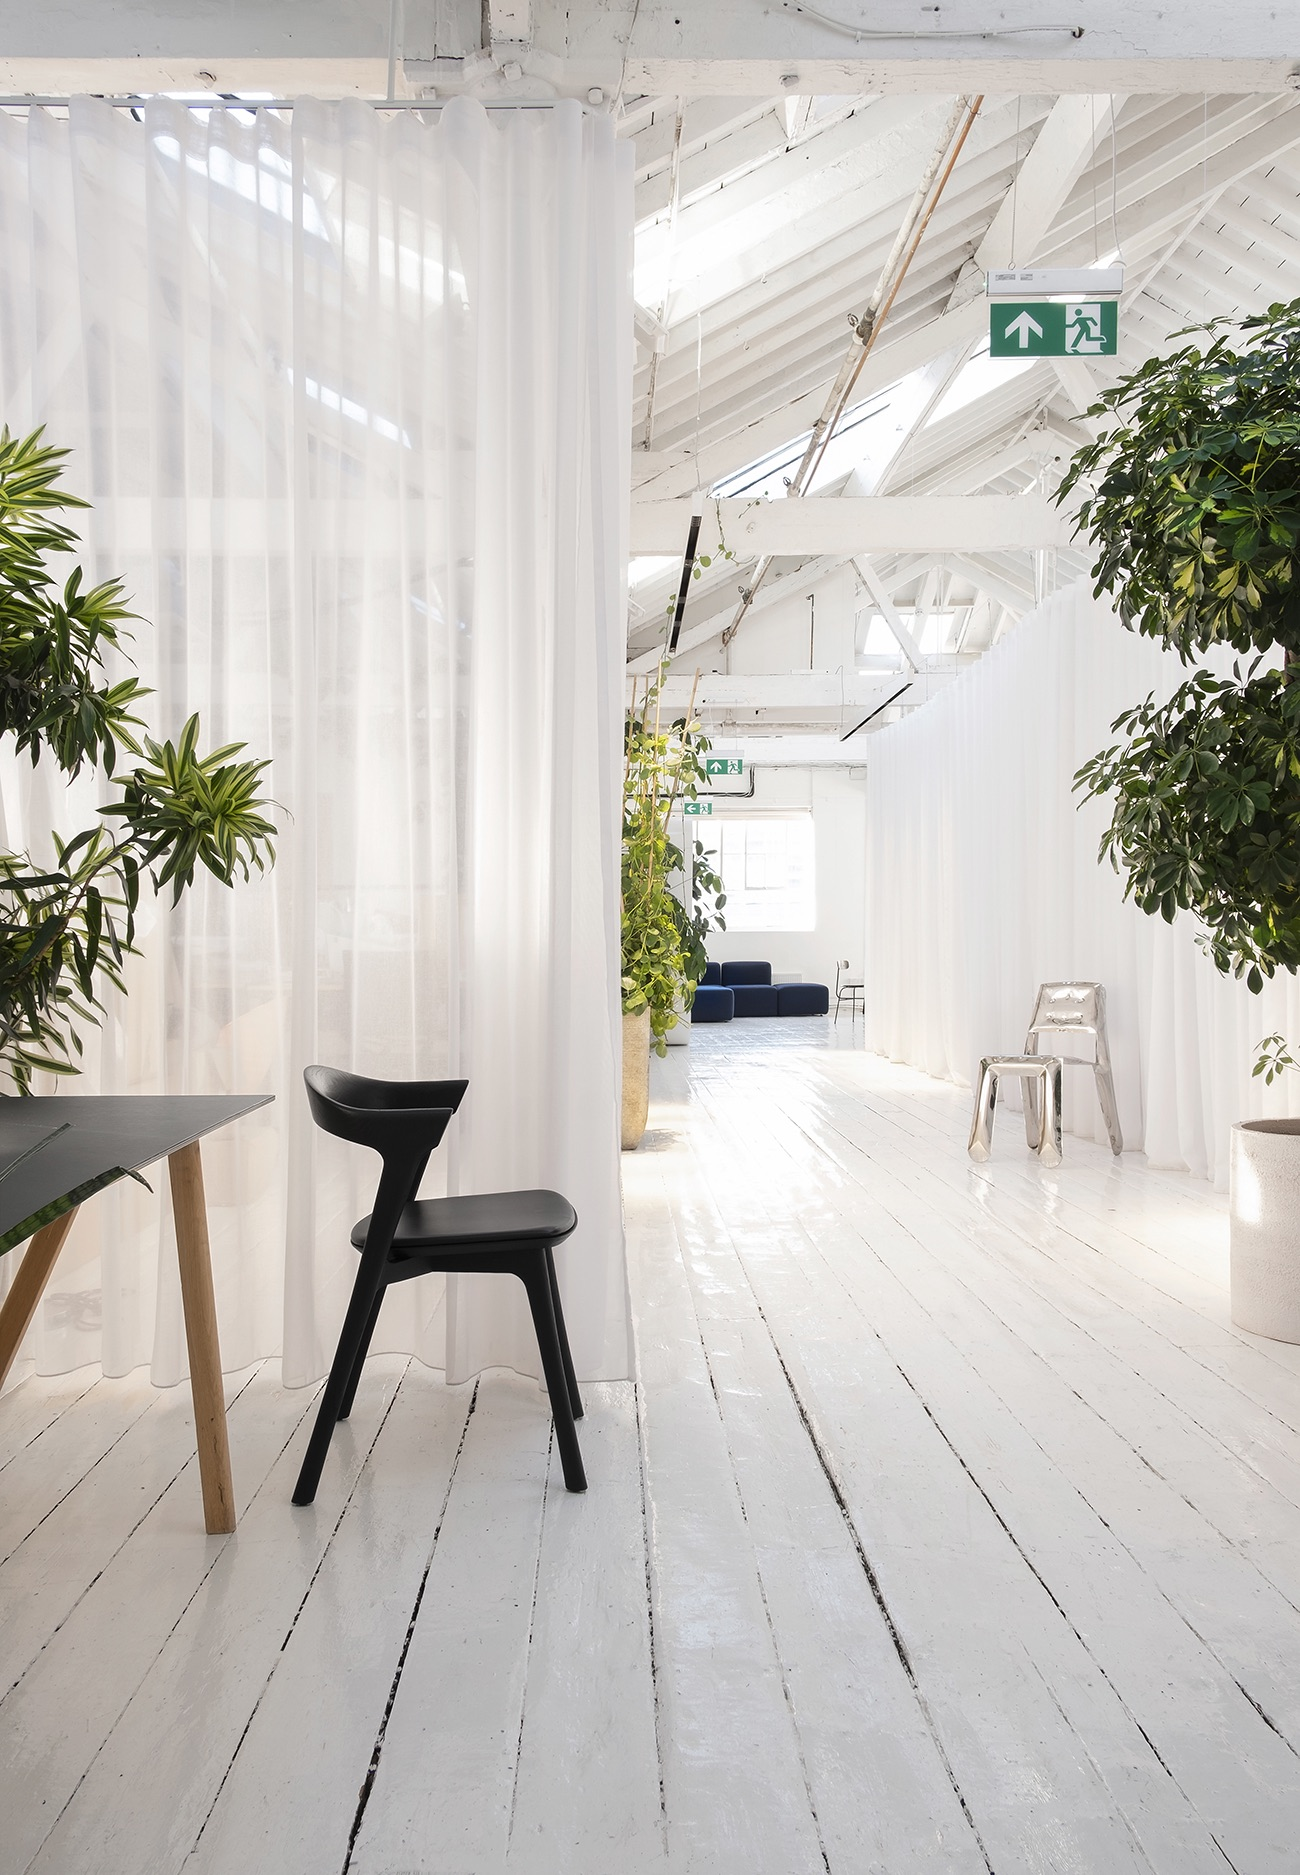 clippings-london-office-10